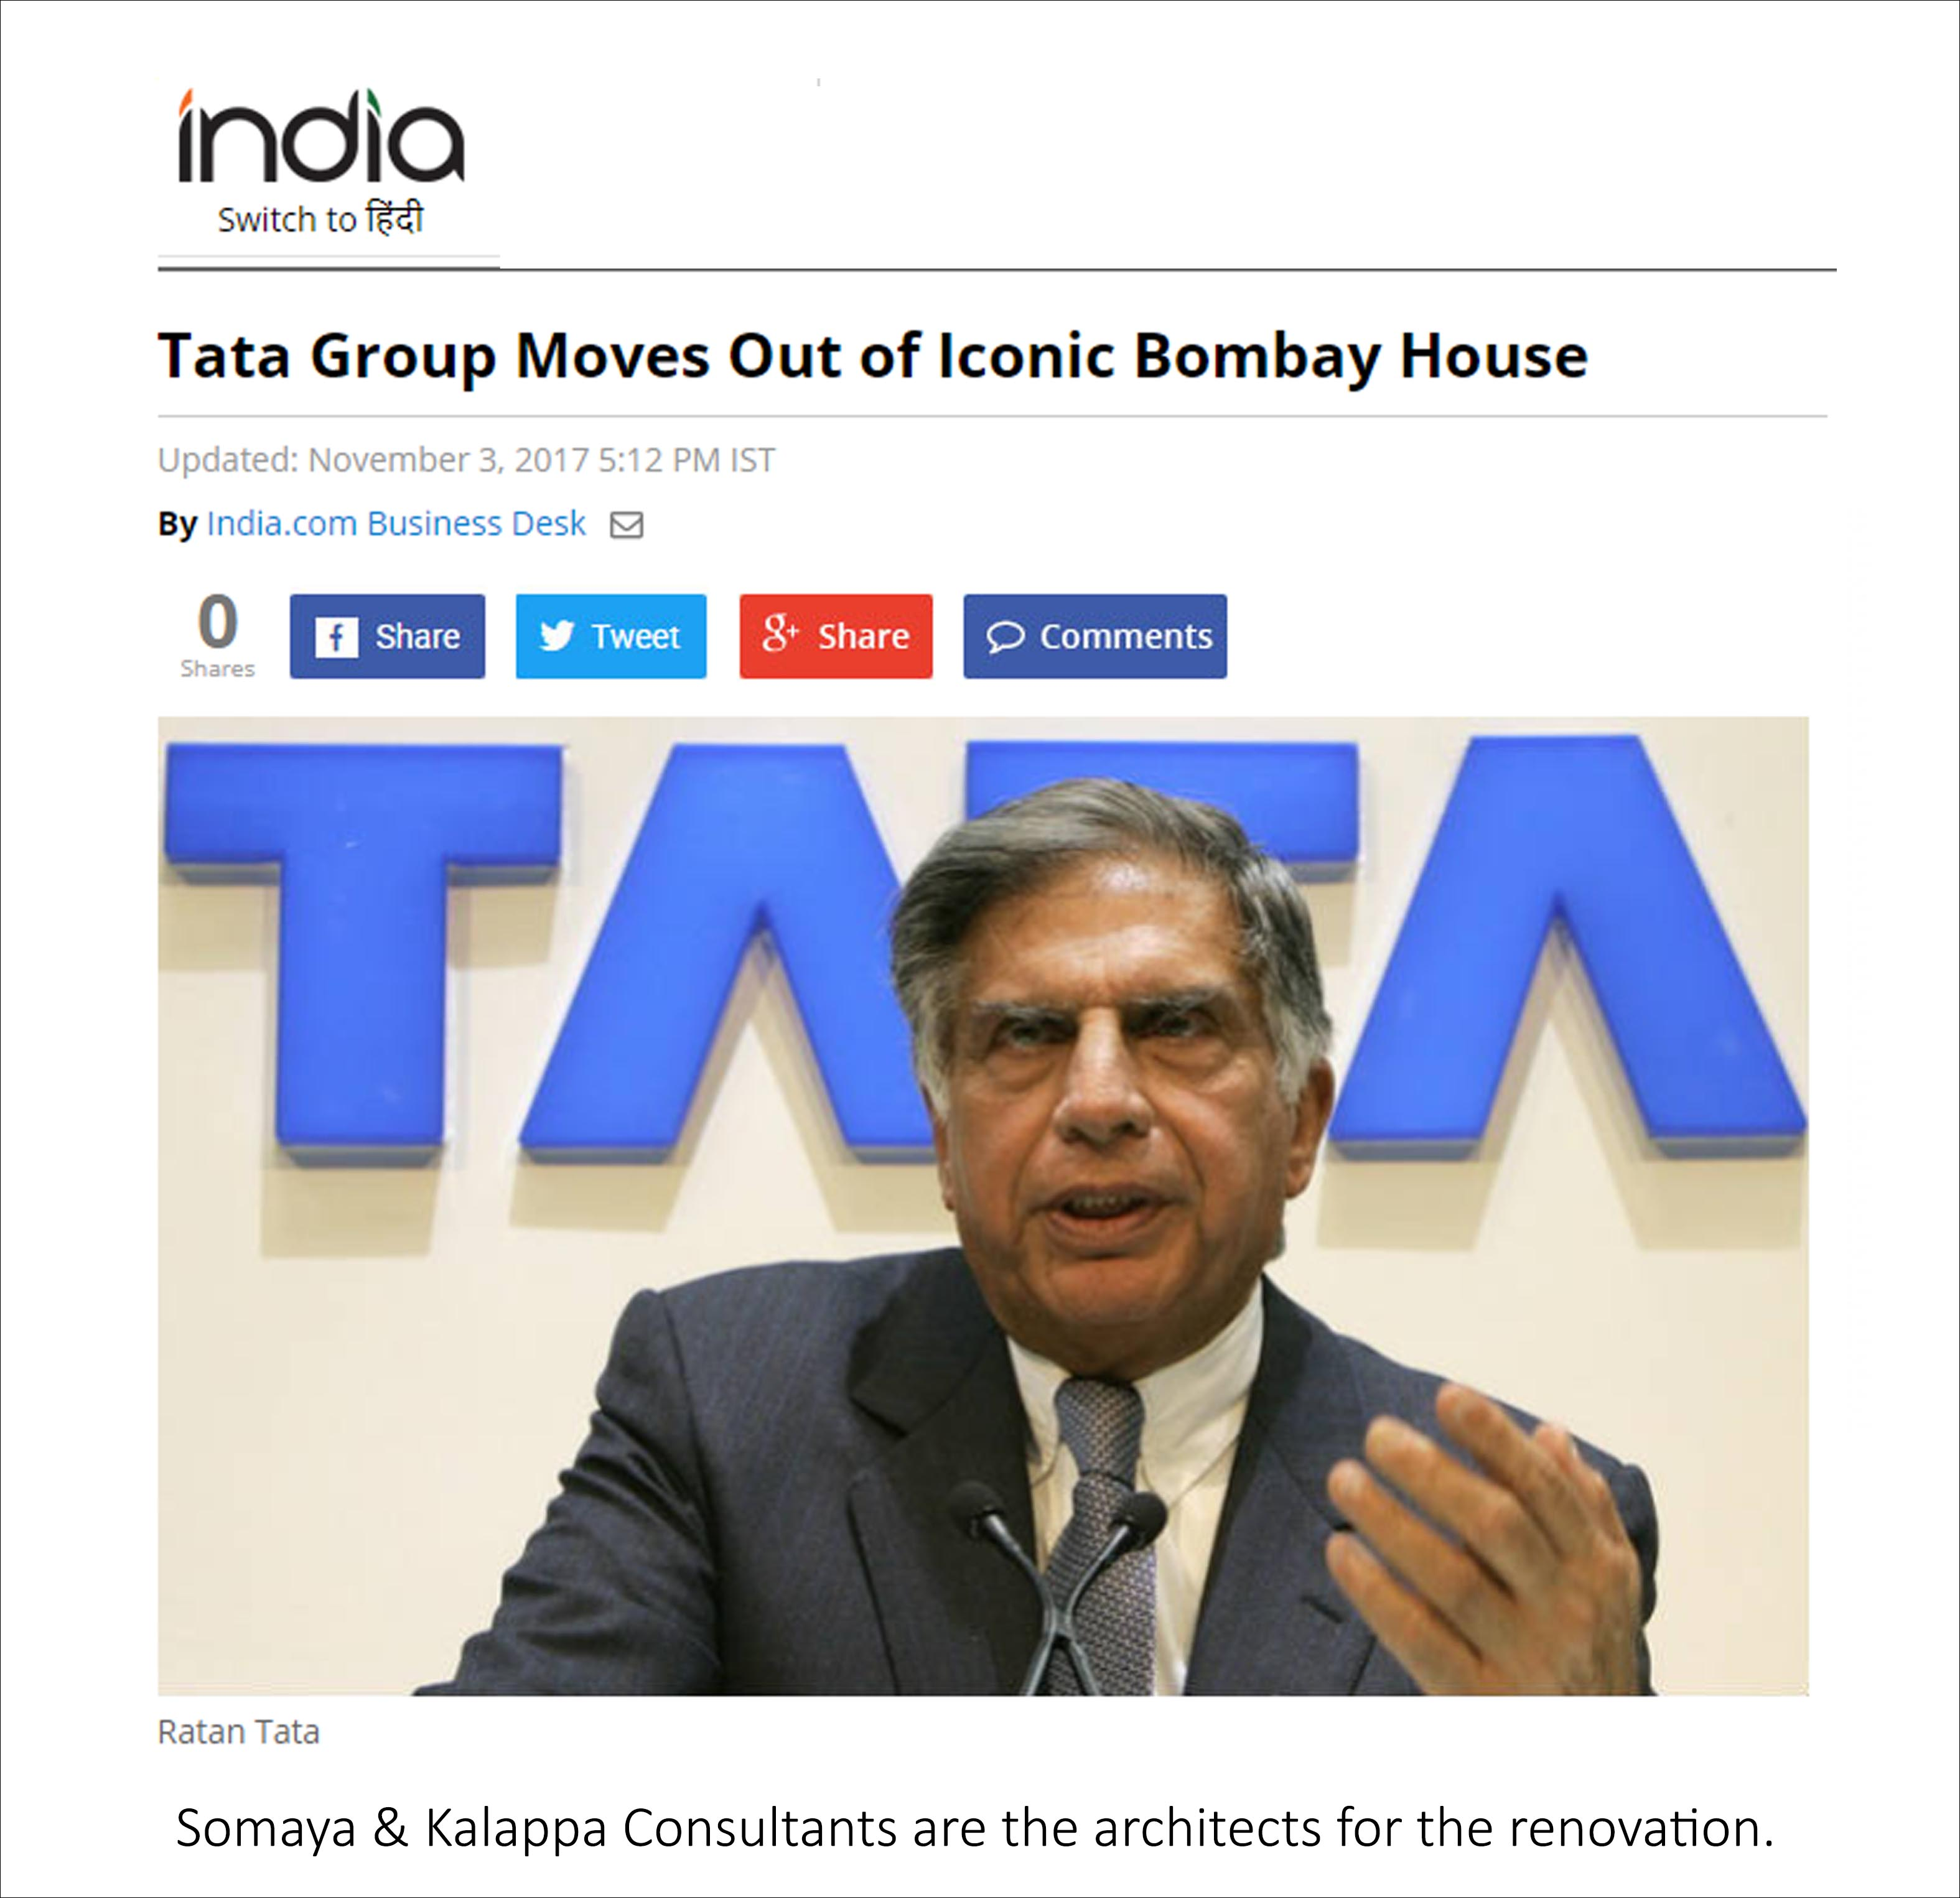 Tata Group Moves Out of Iconic Bombay House, India - November 2017